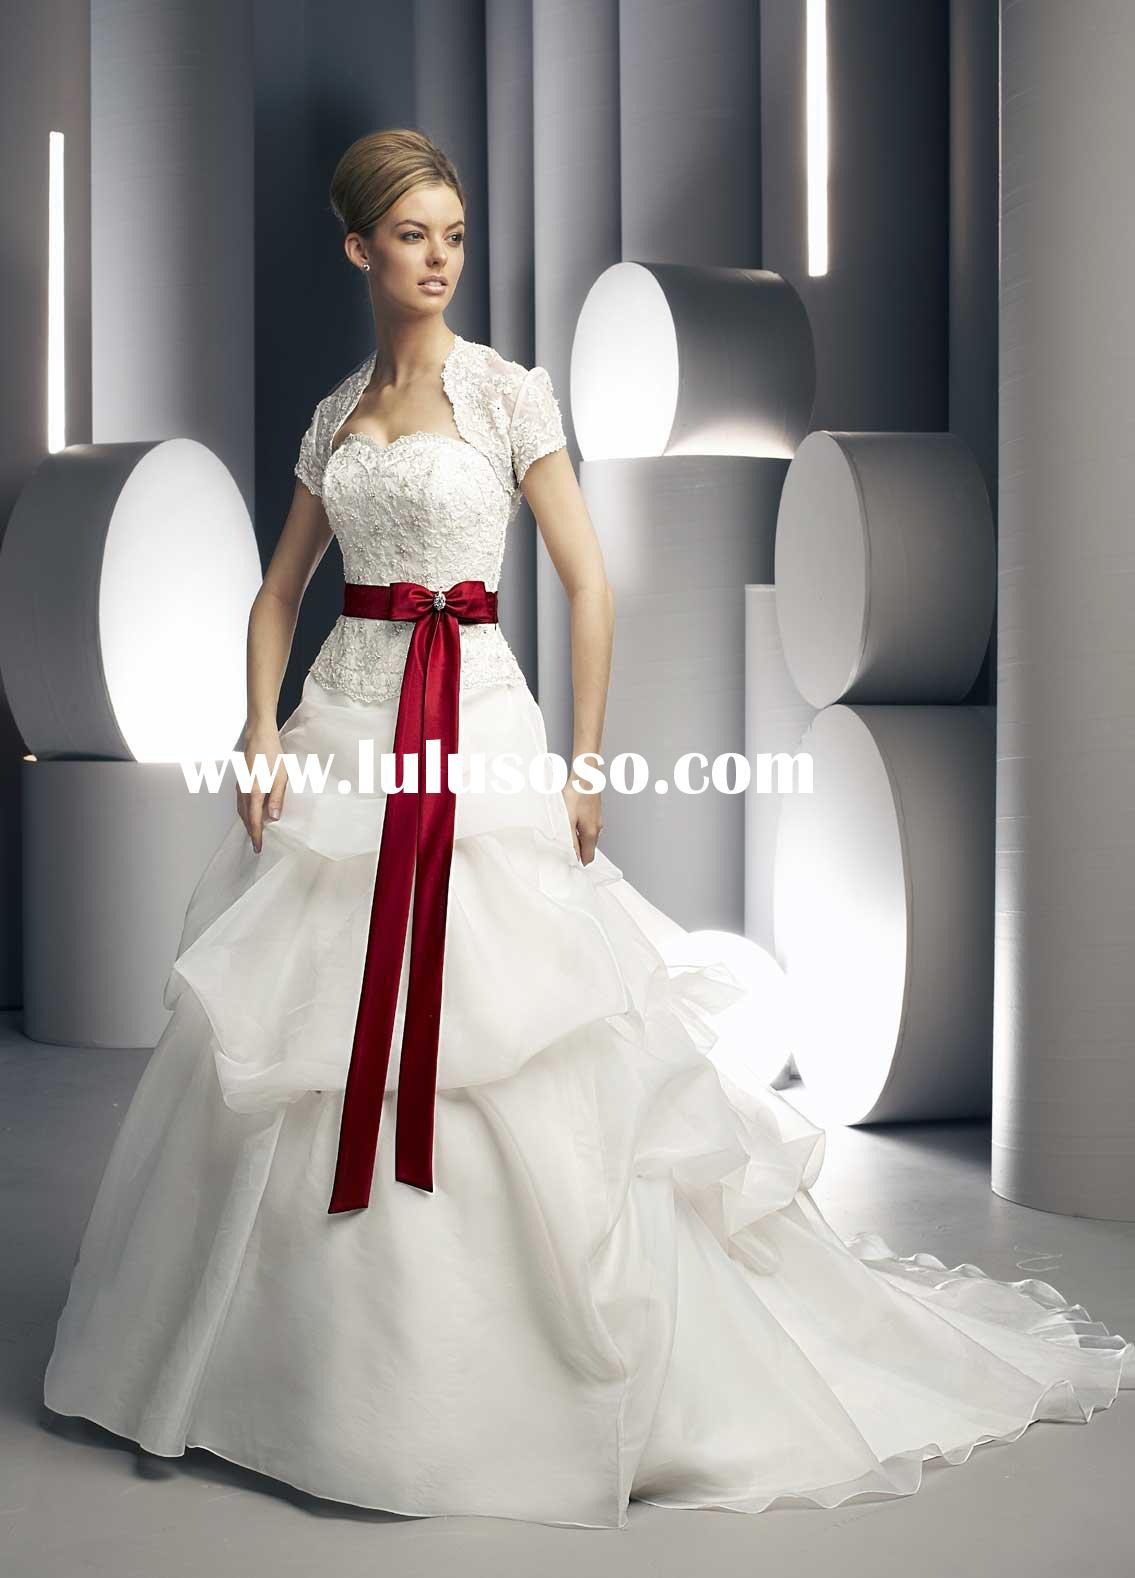 W163 High quality beautifulshort sleeve with lace jacket wedding gown